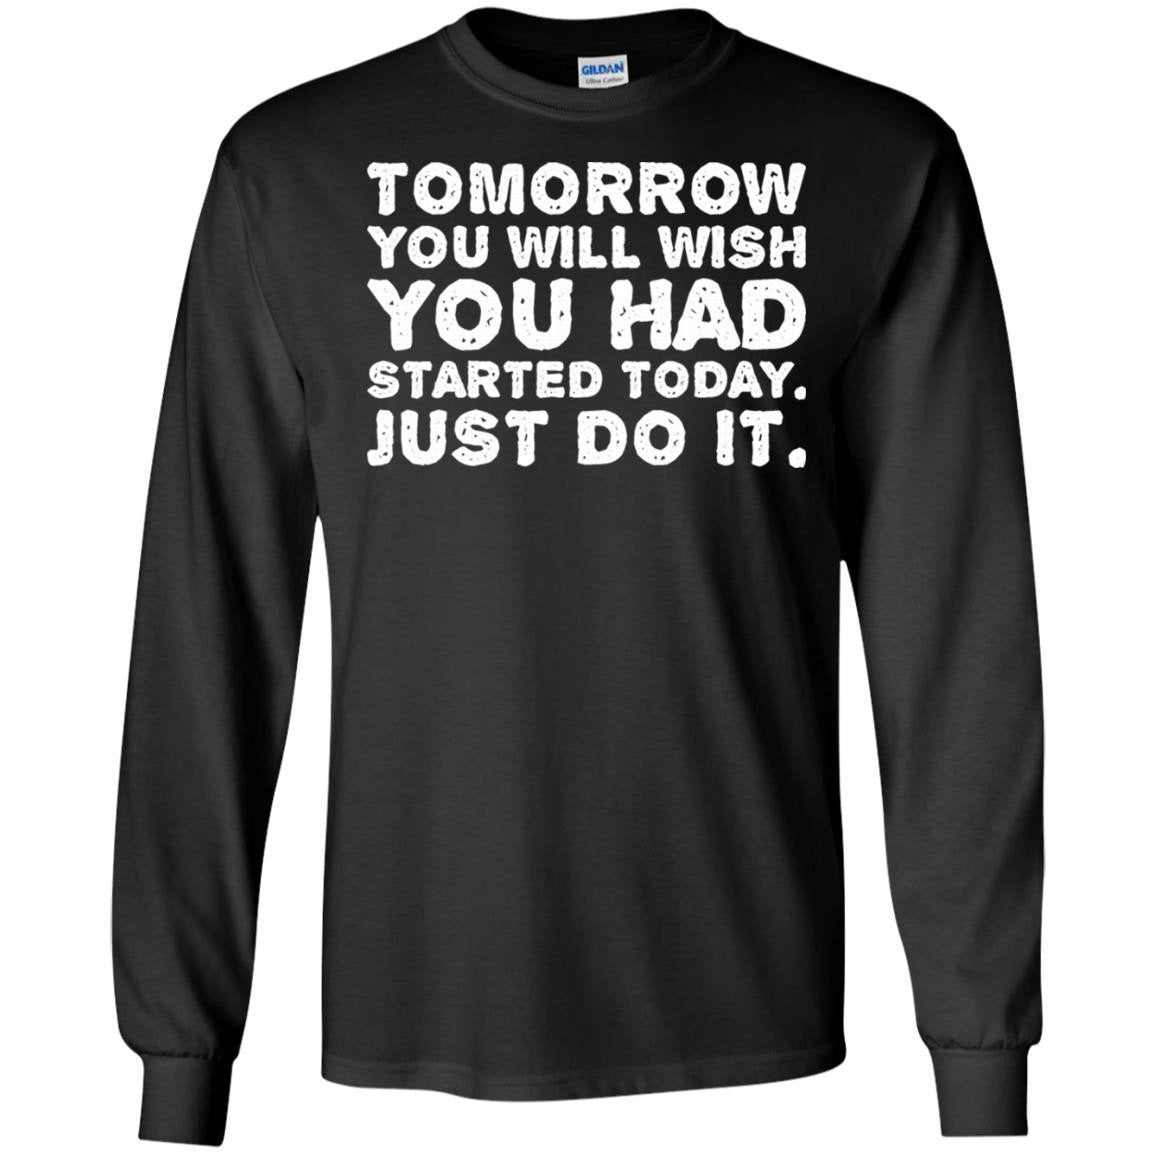 ca202b447 Tomorrow You Will Wish You Had Started Today T-Shirt Long Sleeve 240 ...